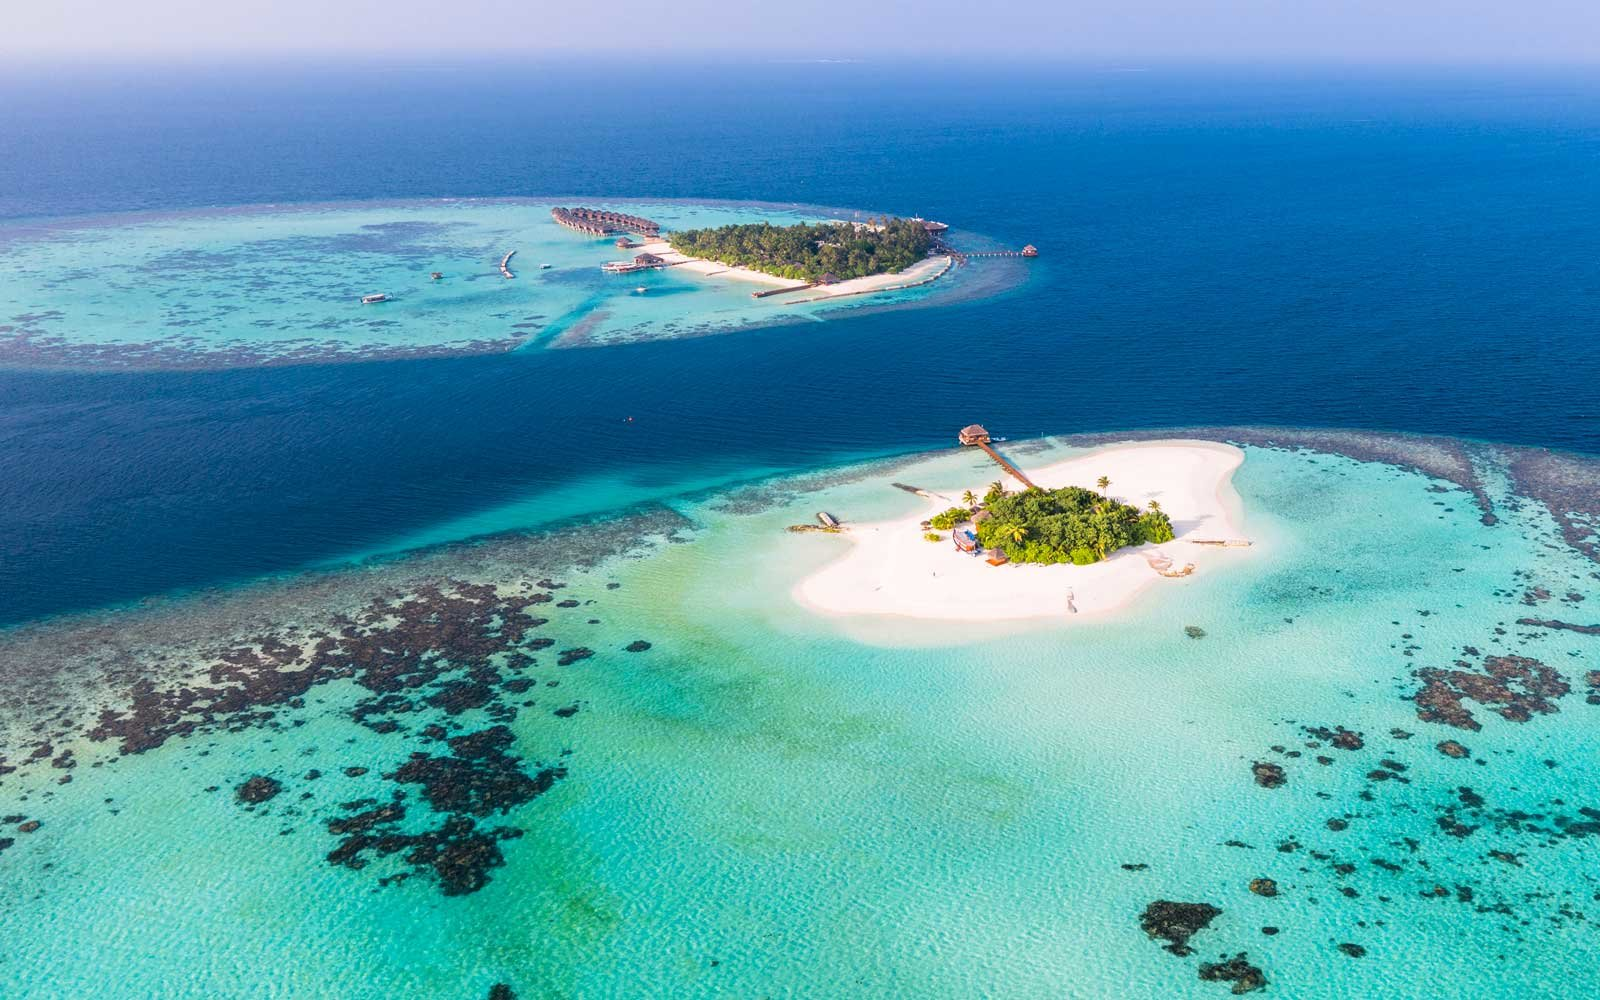 Aerial drone view of a tropical island in the Maldives